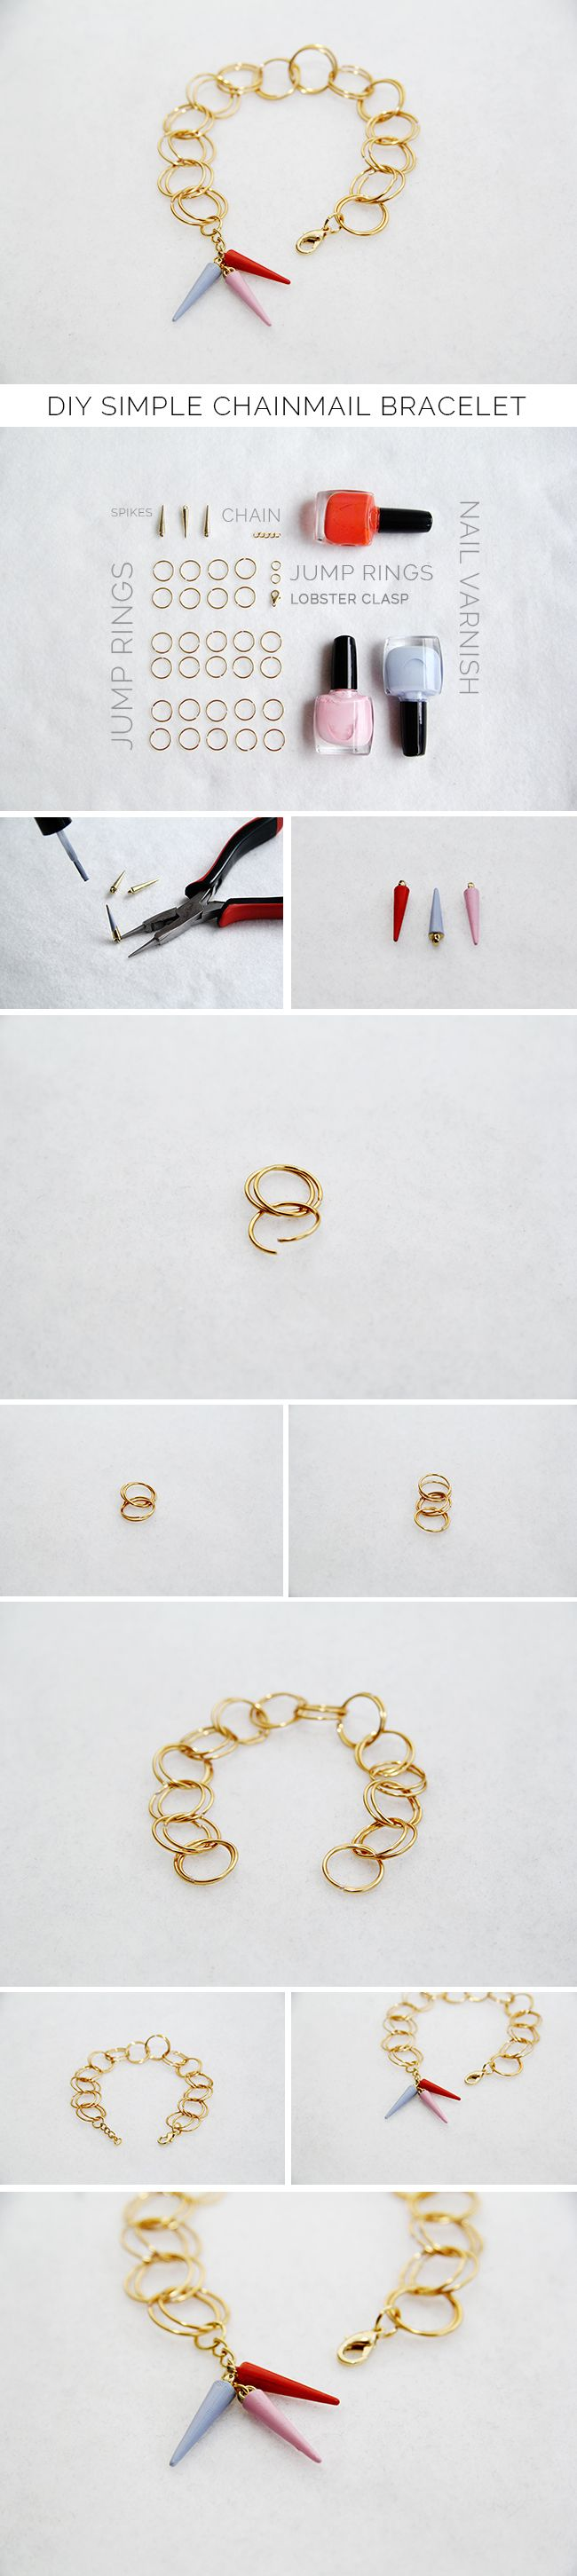 make own jump rings, then this example has interesting ideas to add own focal point and creativity.